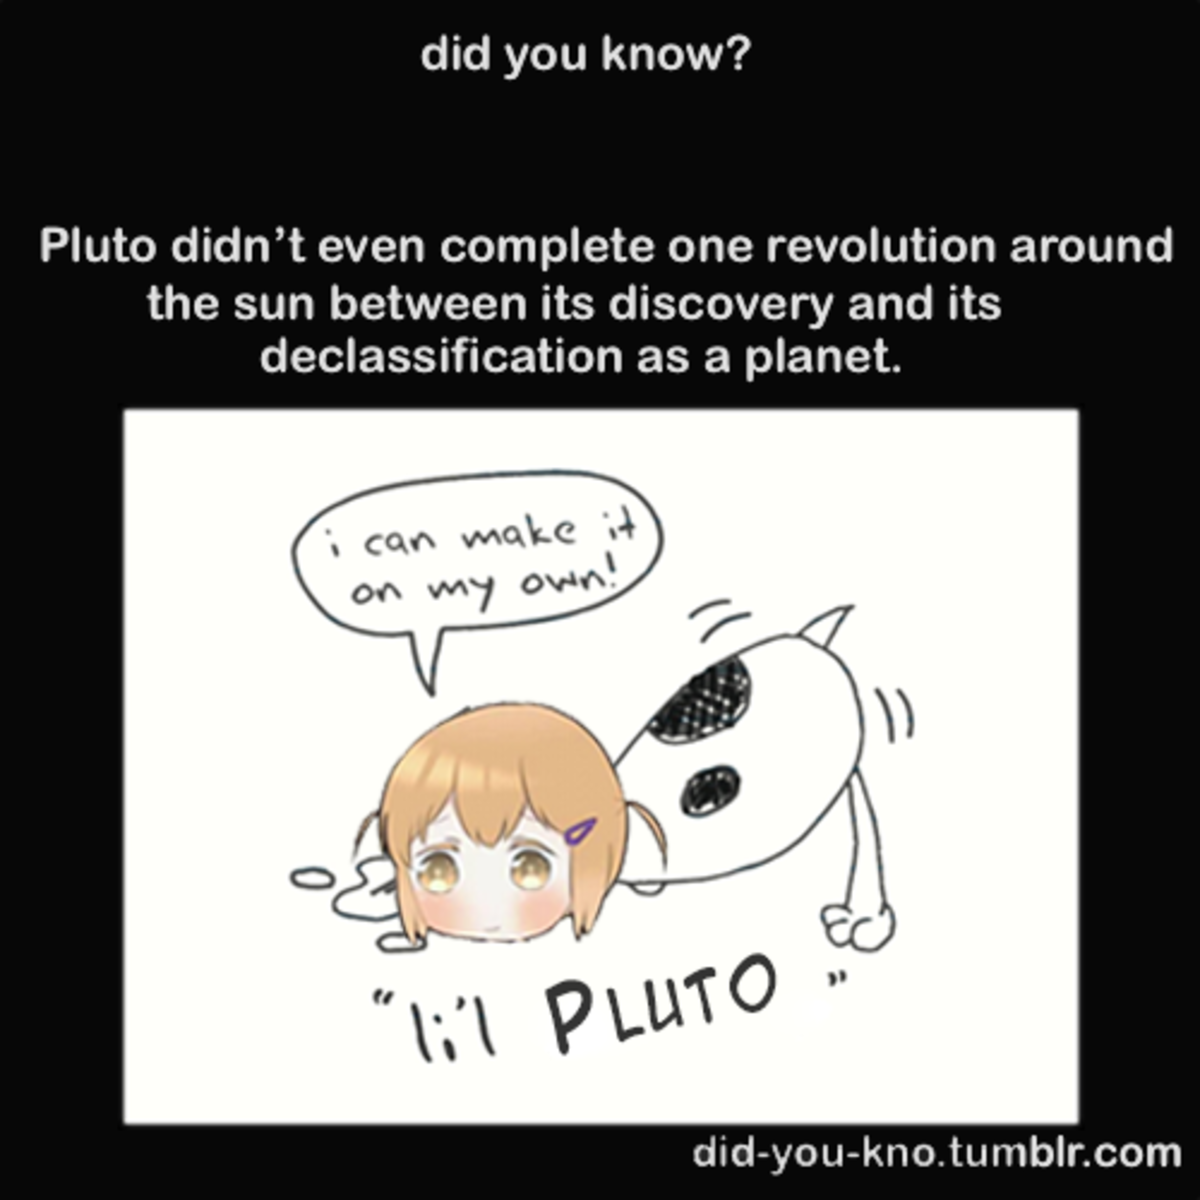 Lil' Pluto. join list: Animango (873 subs)Mention Clicks: 92611Msgs Sent: 676321Mention History. did you know? Pluto didn' t even complete one revolution around